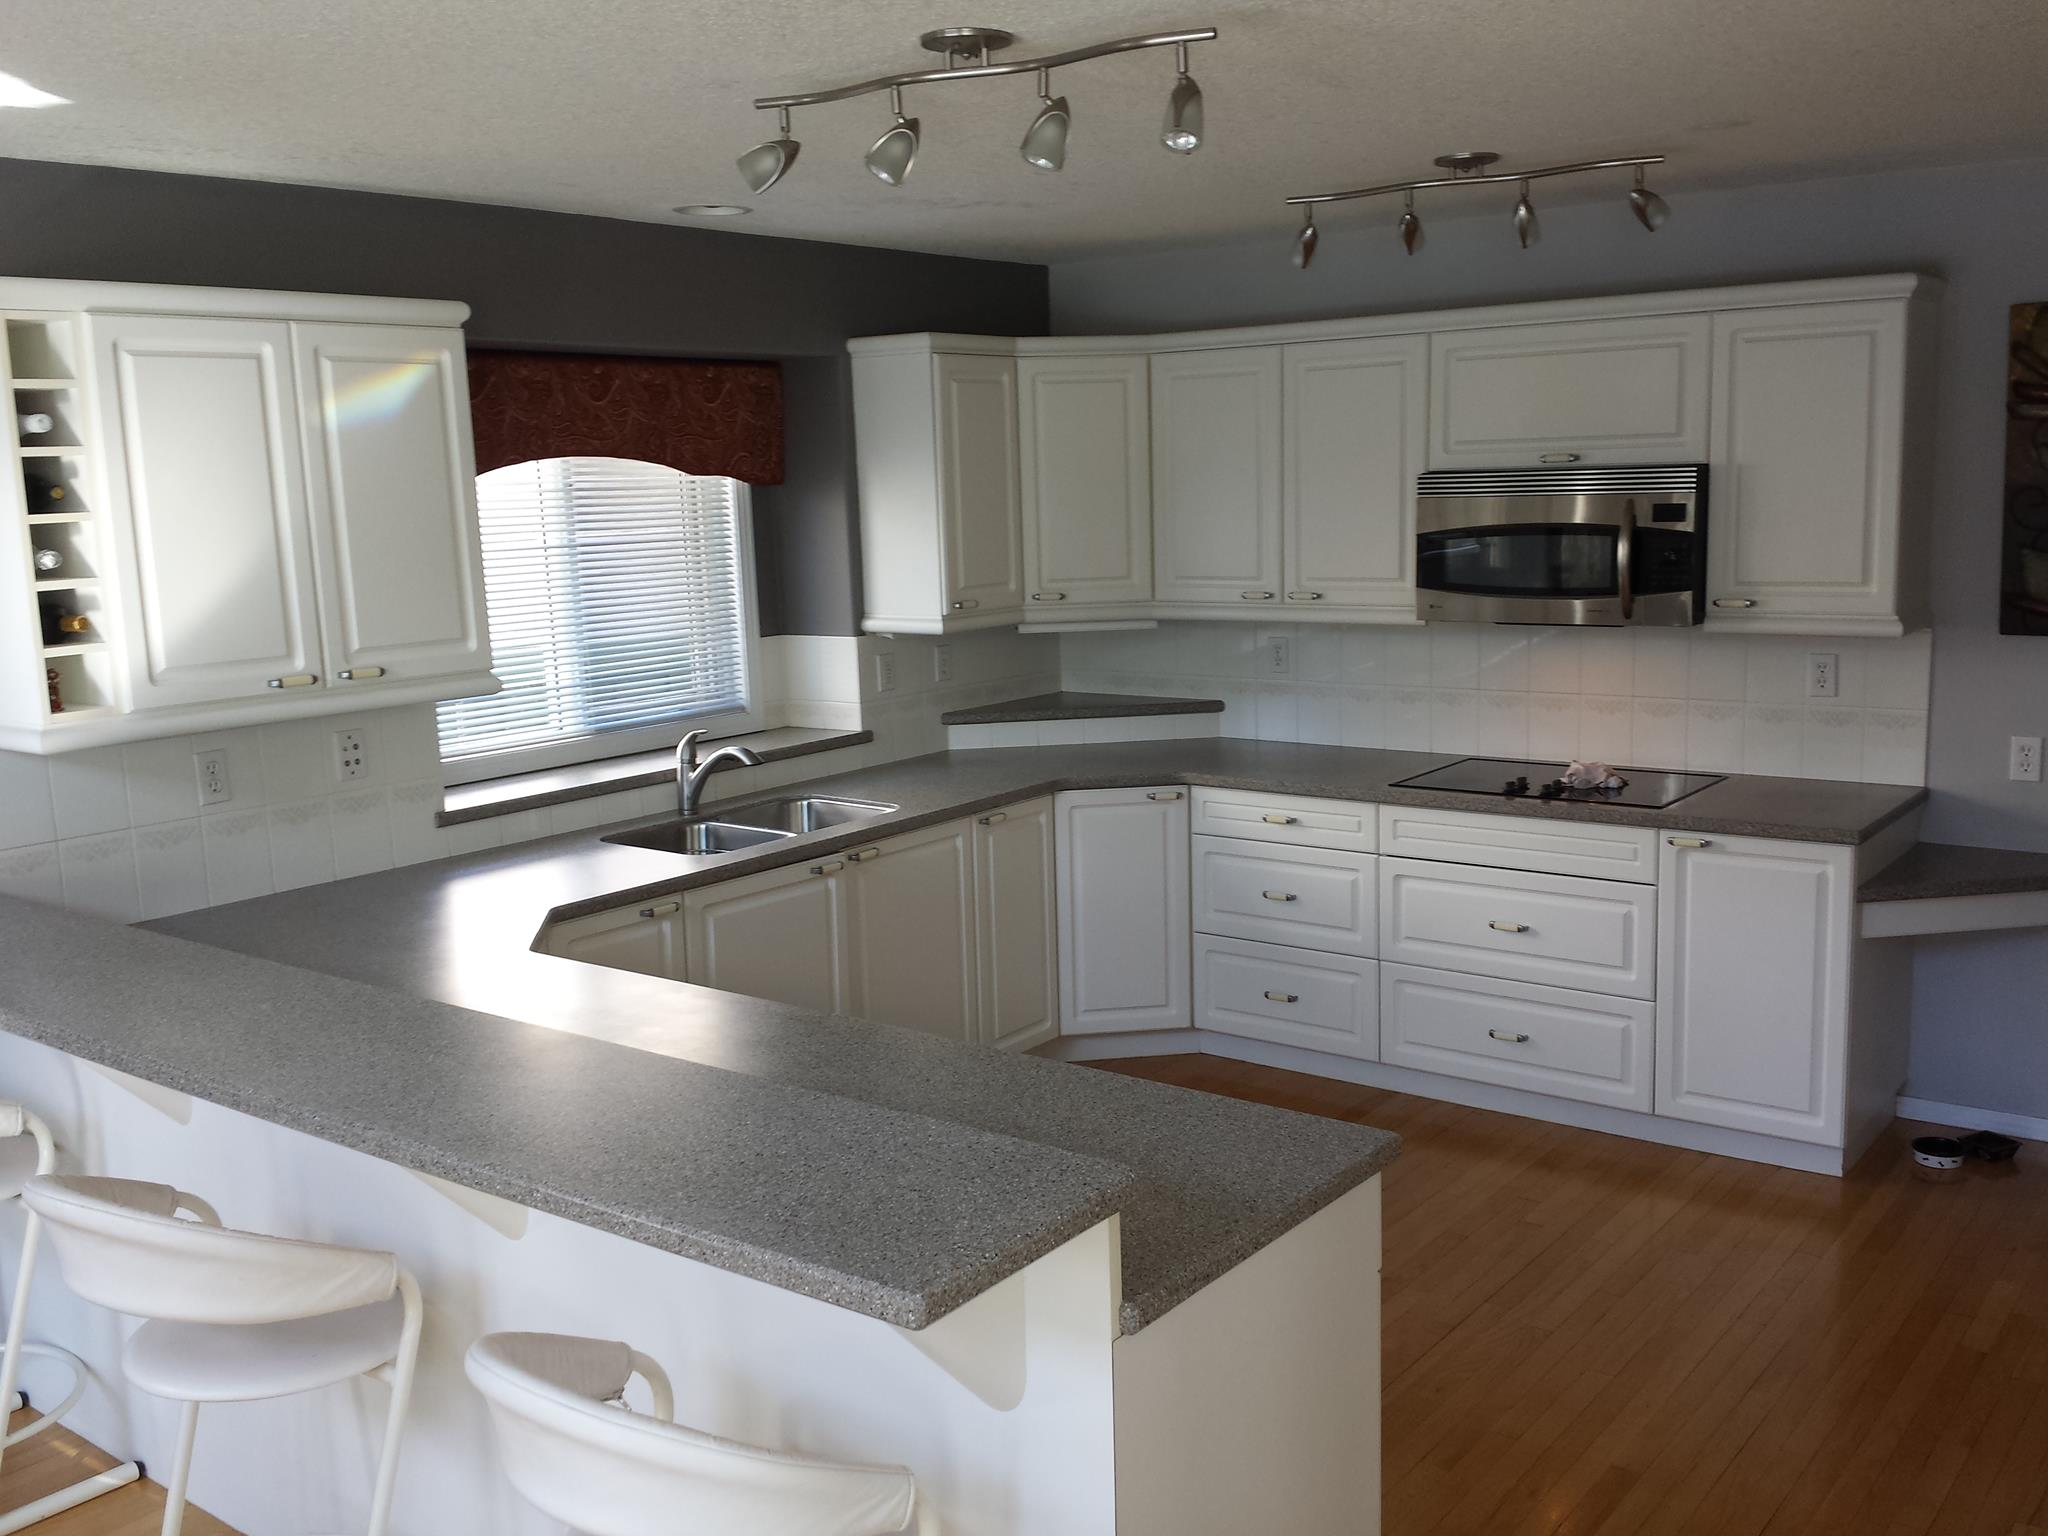 Countertop Expressions Reasonably Priced Cabinet And Countertop